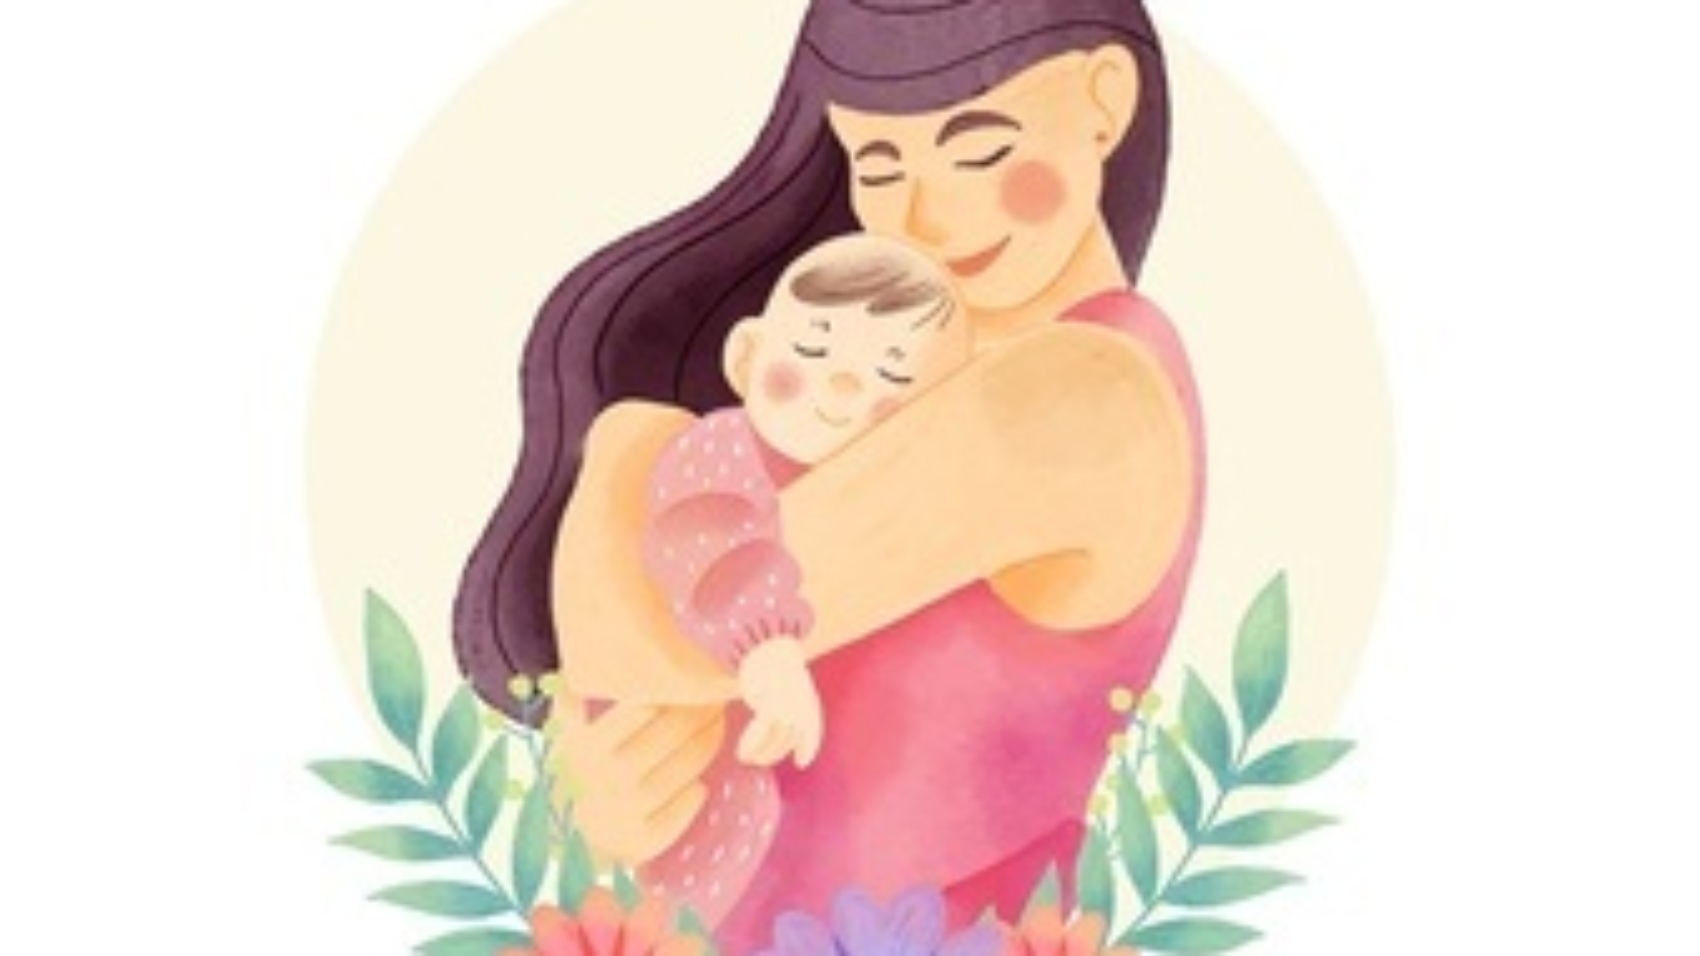 watercolor-mother-s-day-greeting_23-2148473721